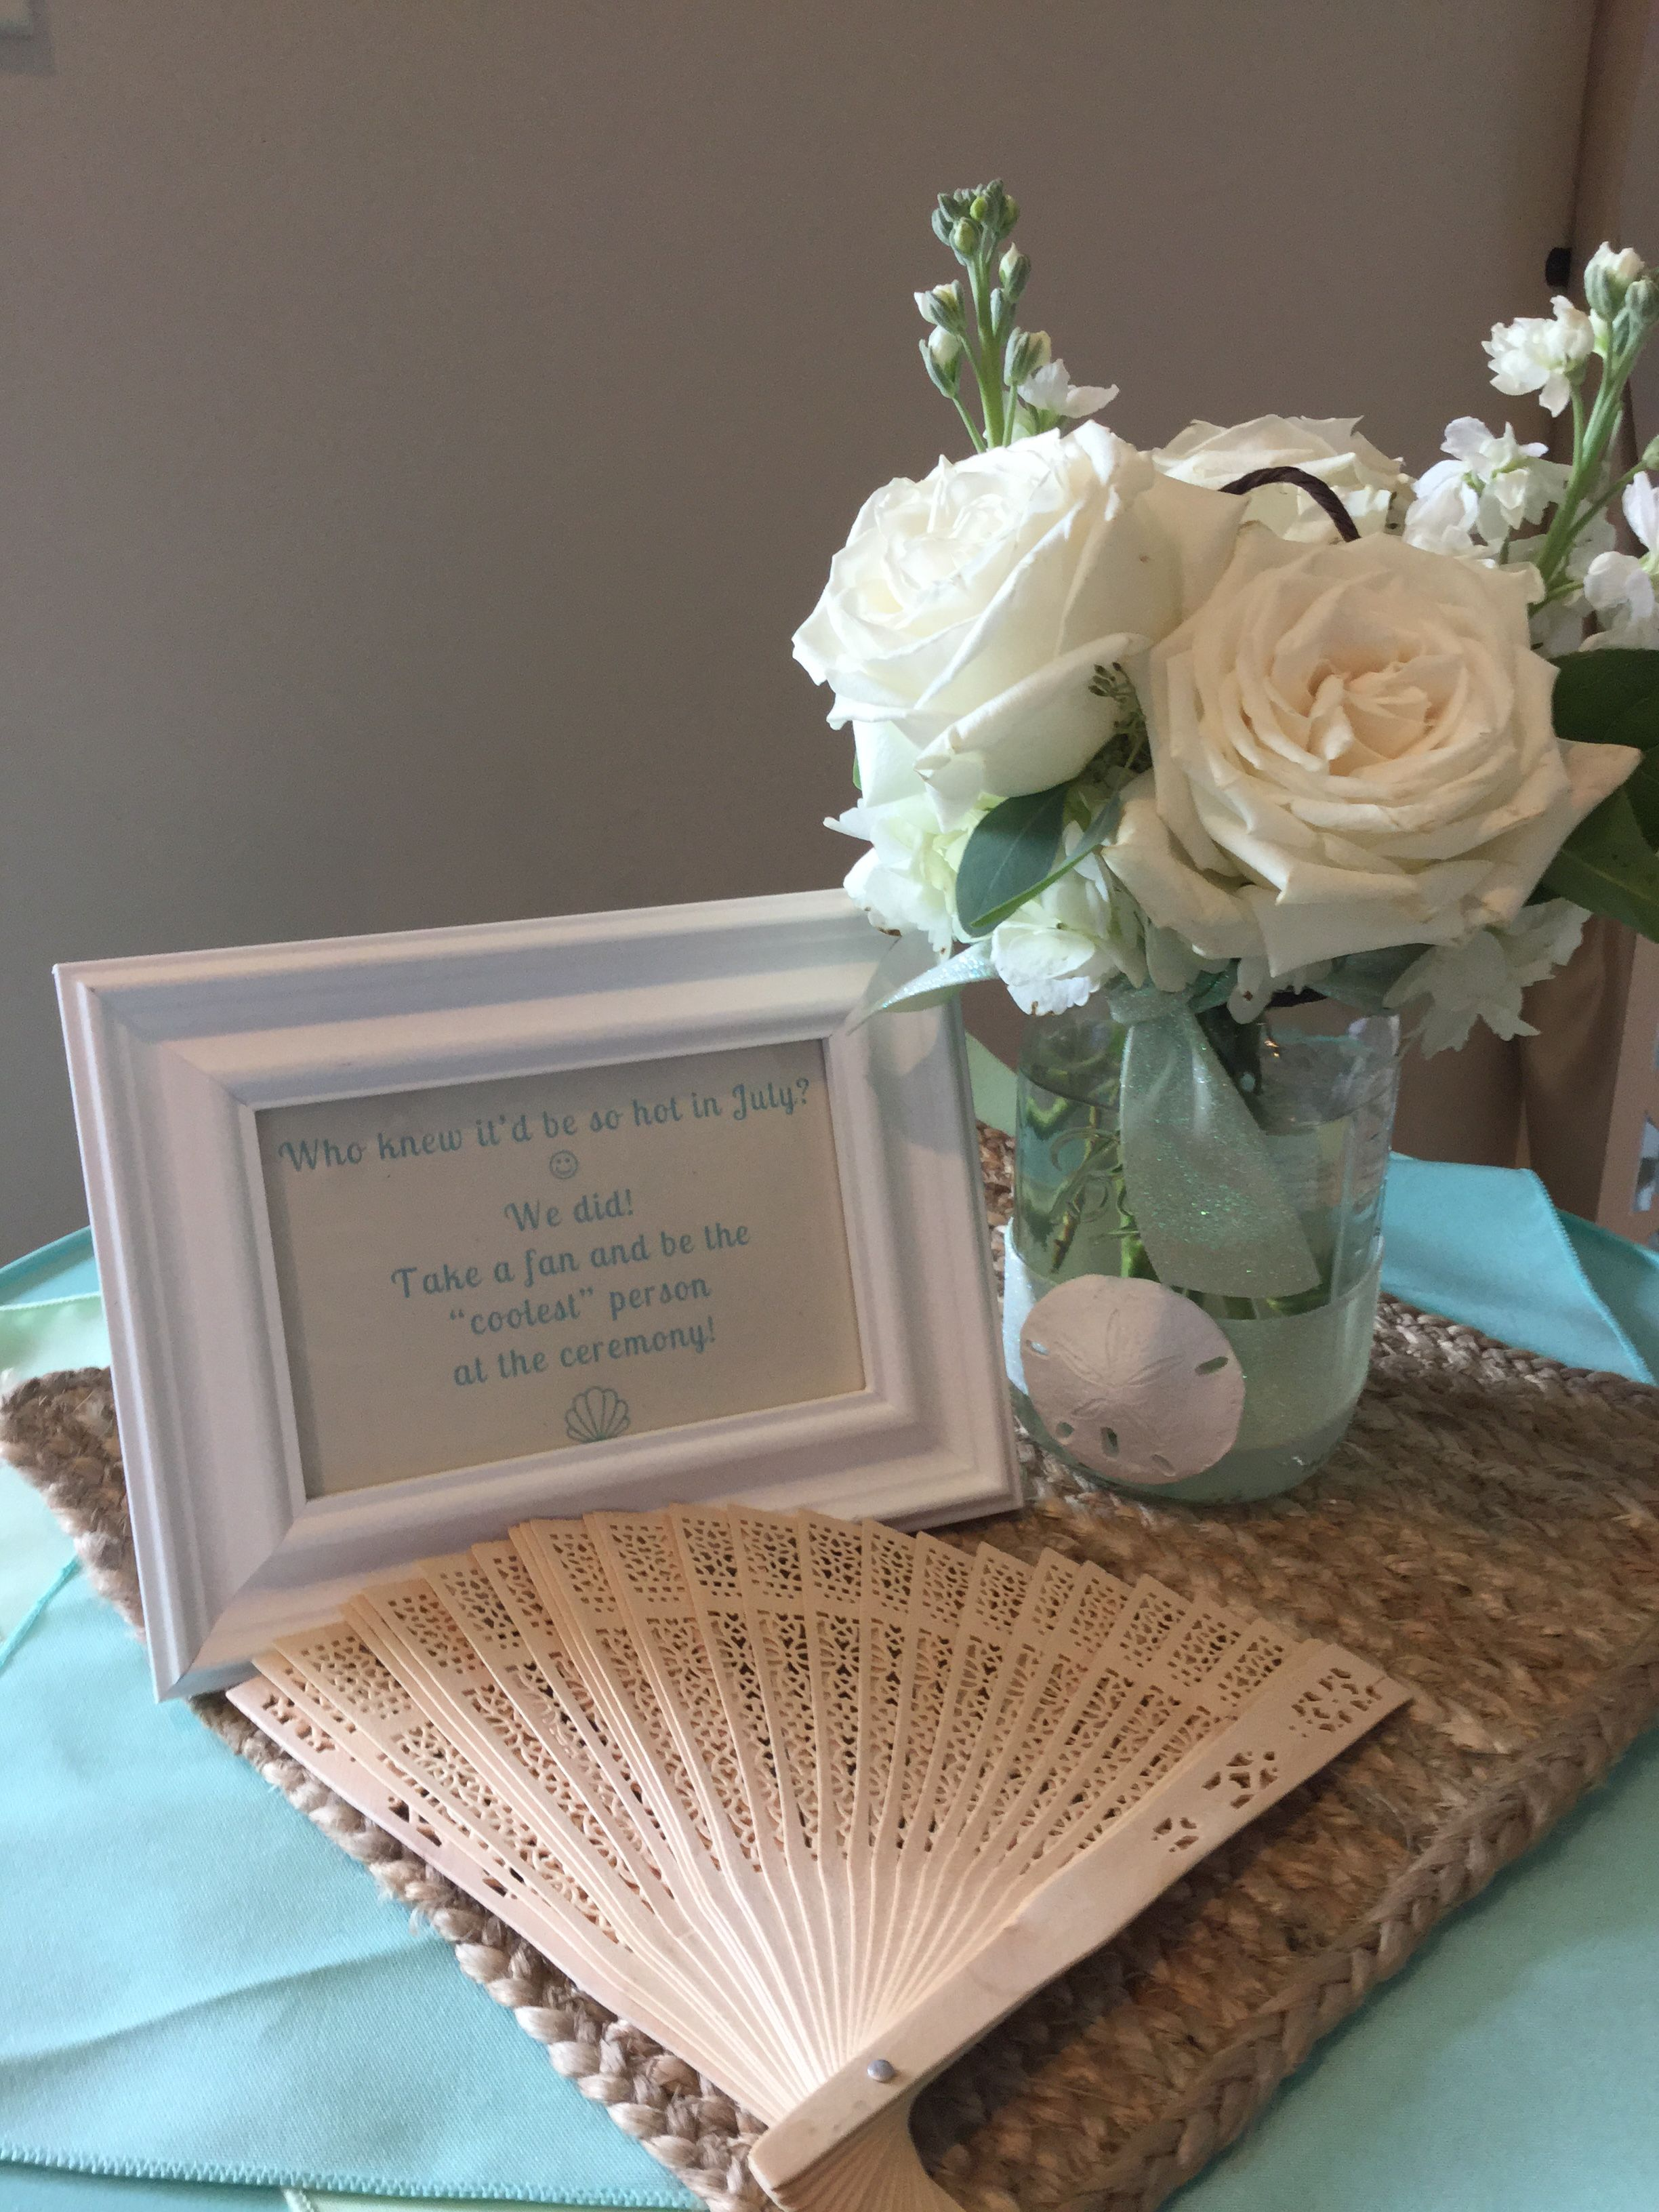 Beach wedding decoration & favors You can do so much